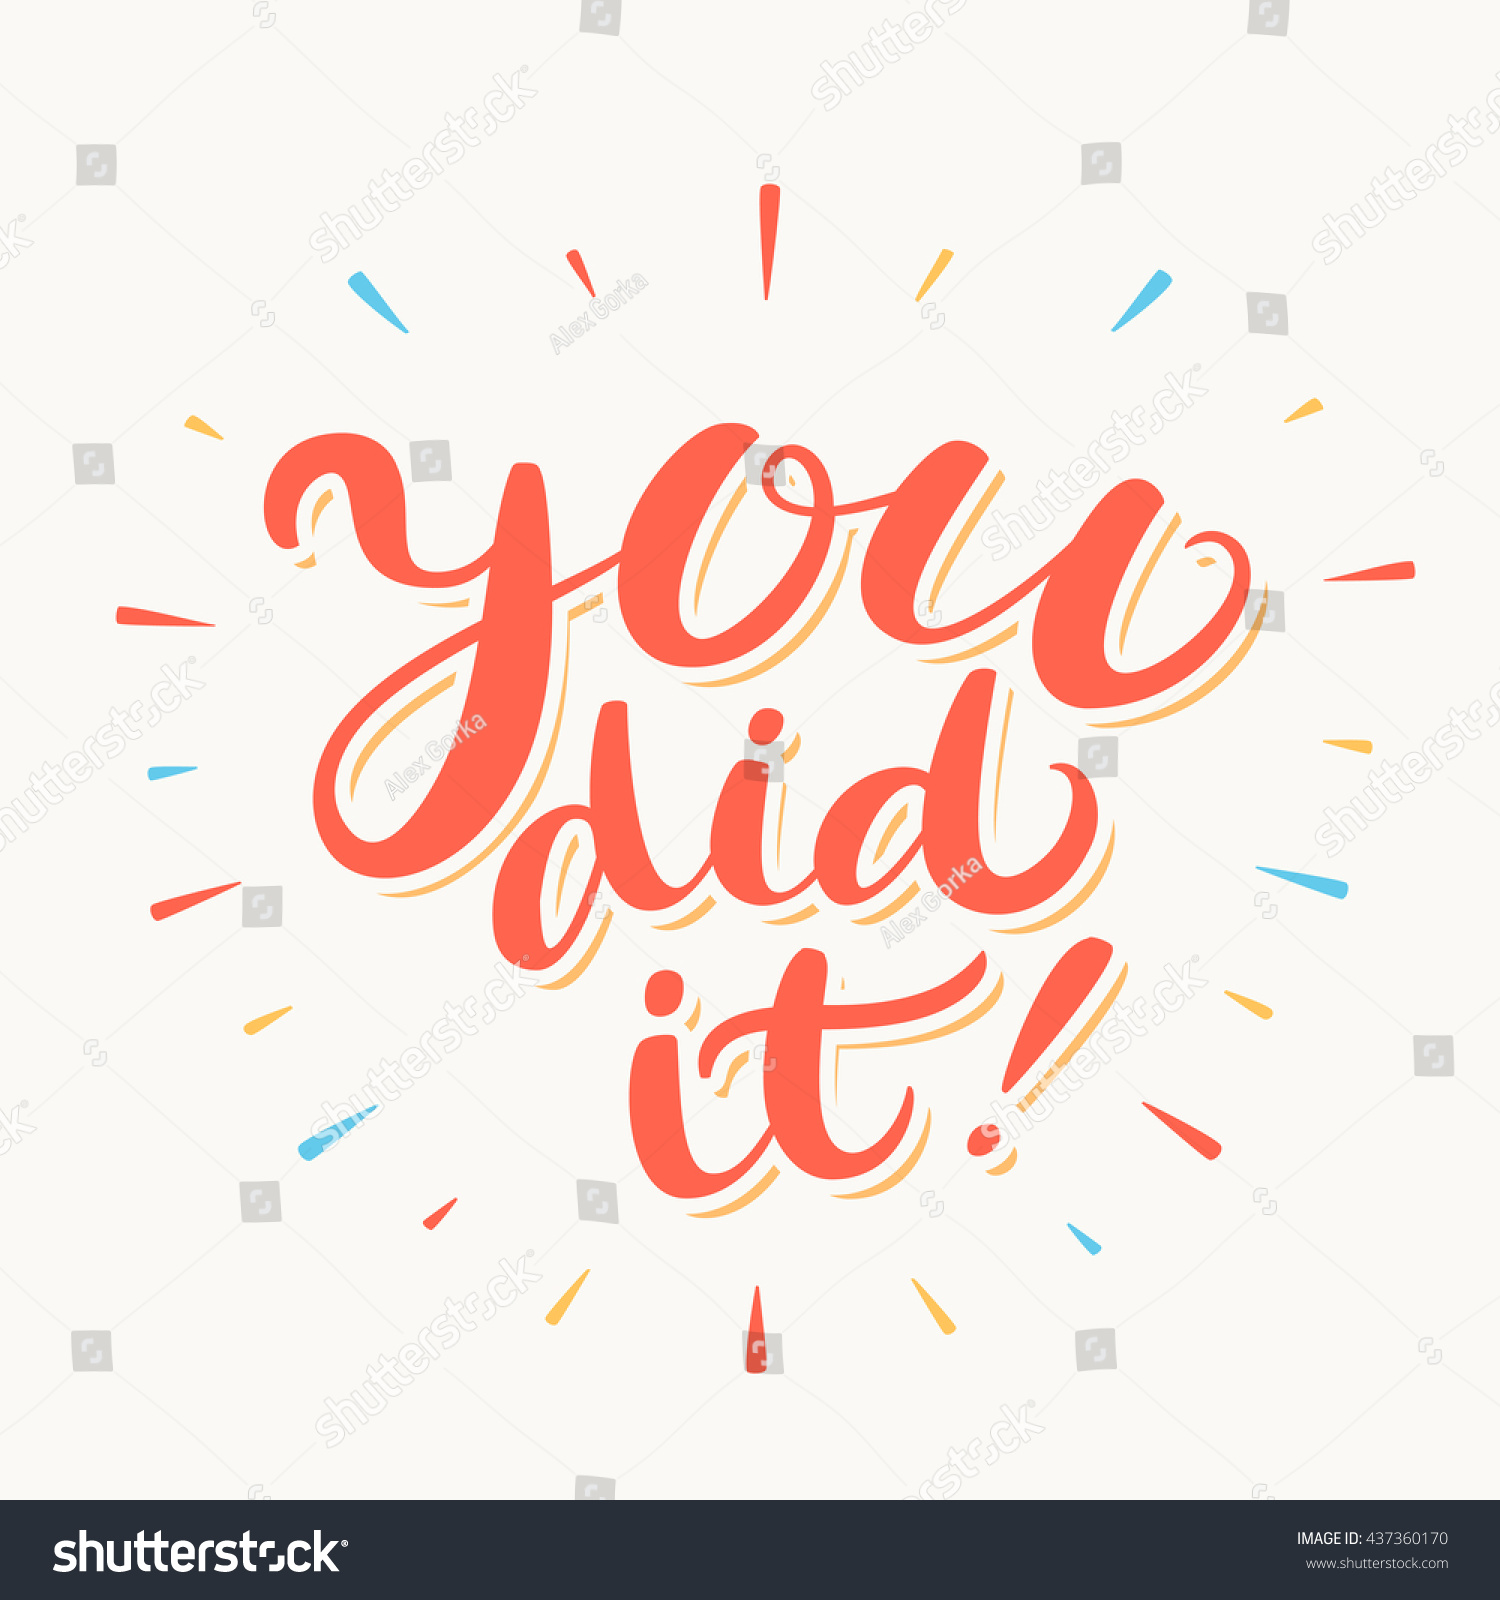 You Did It Images Galleries With A Bite